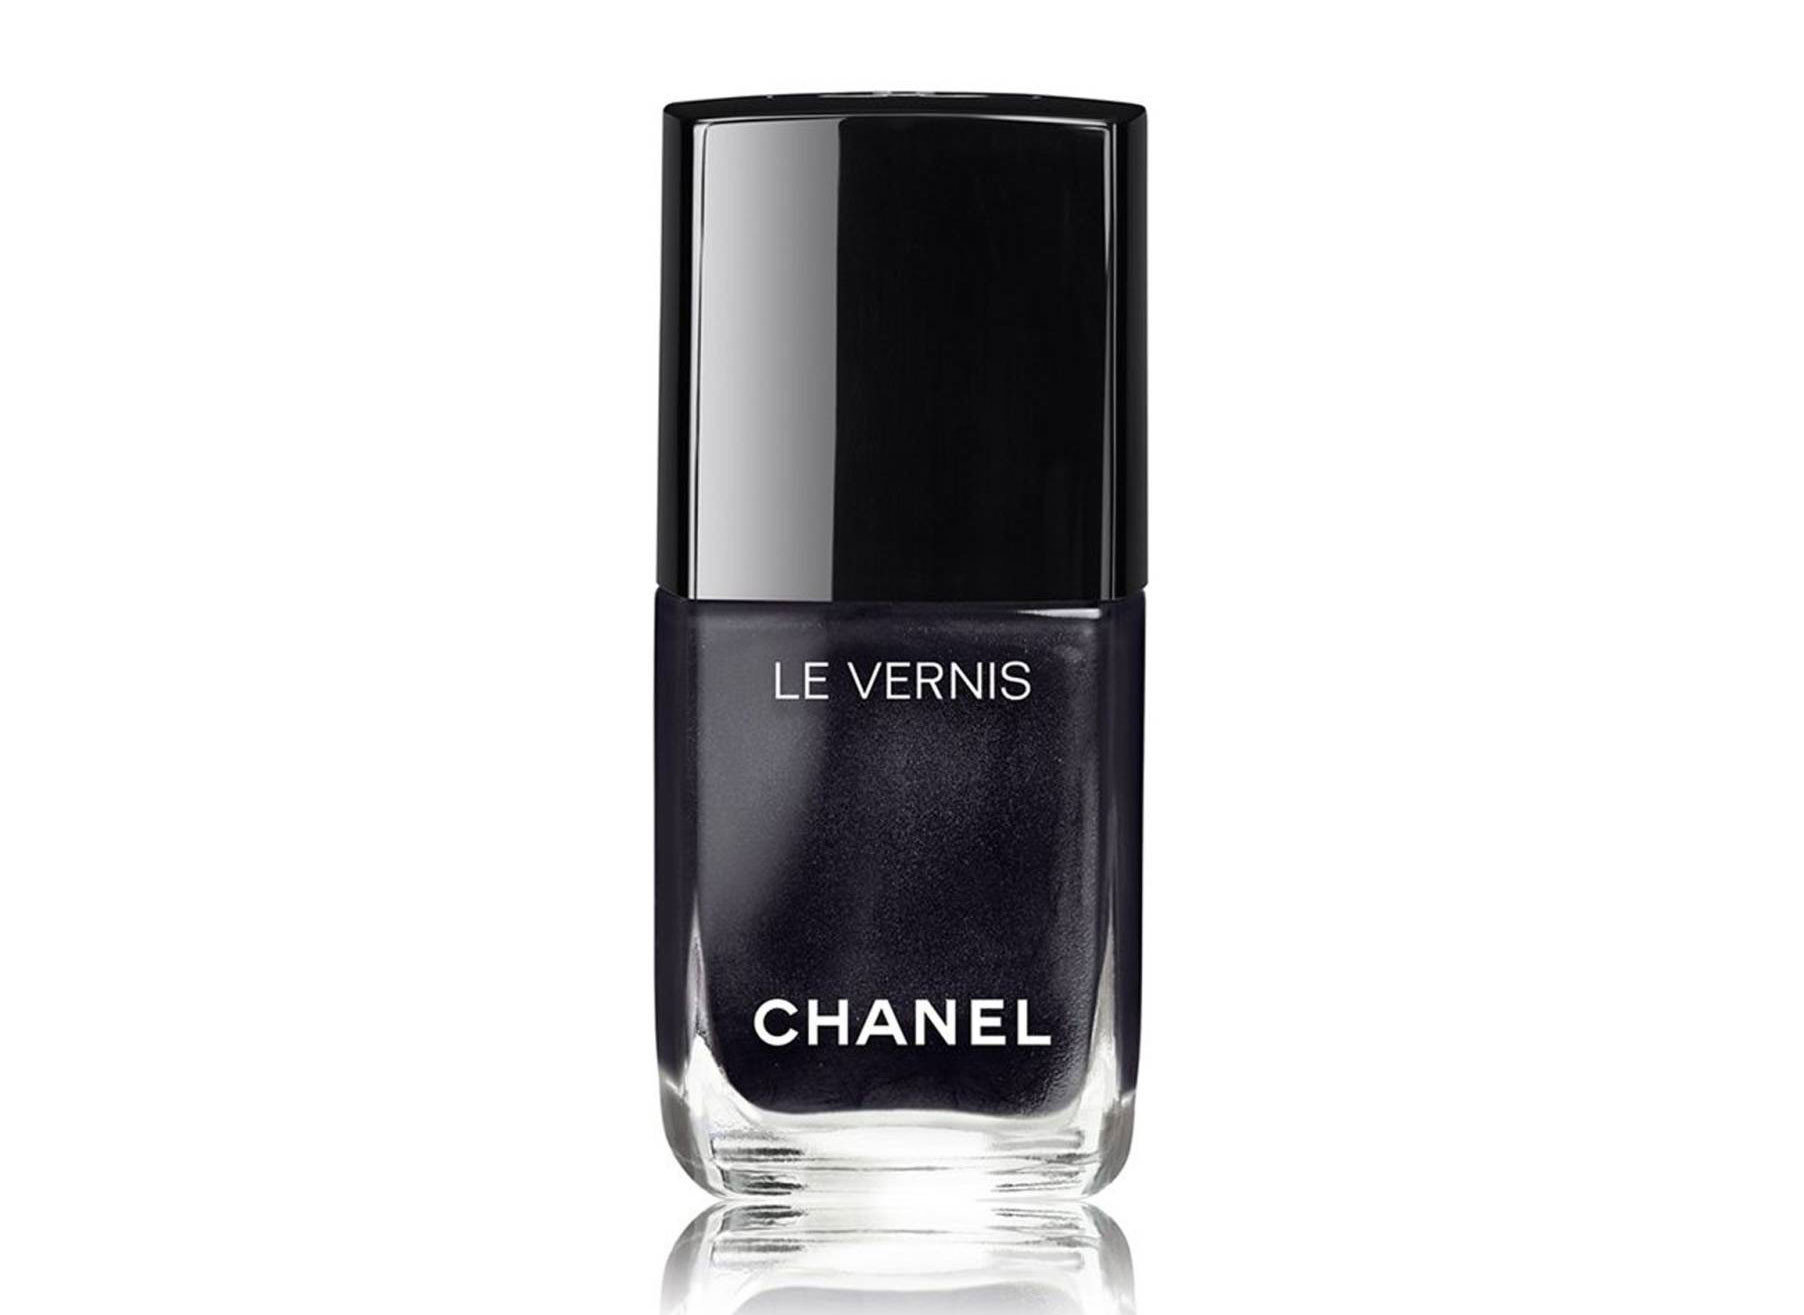 Celebs Style + Design Travel Shop toiletry cosmetics nail polish product product design health & beauty